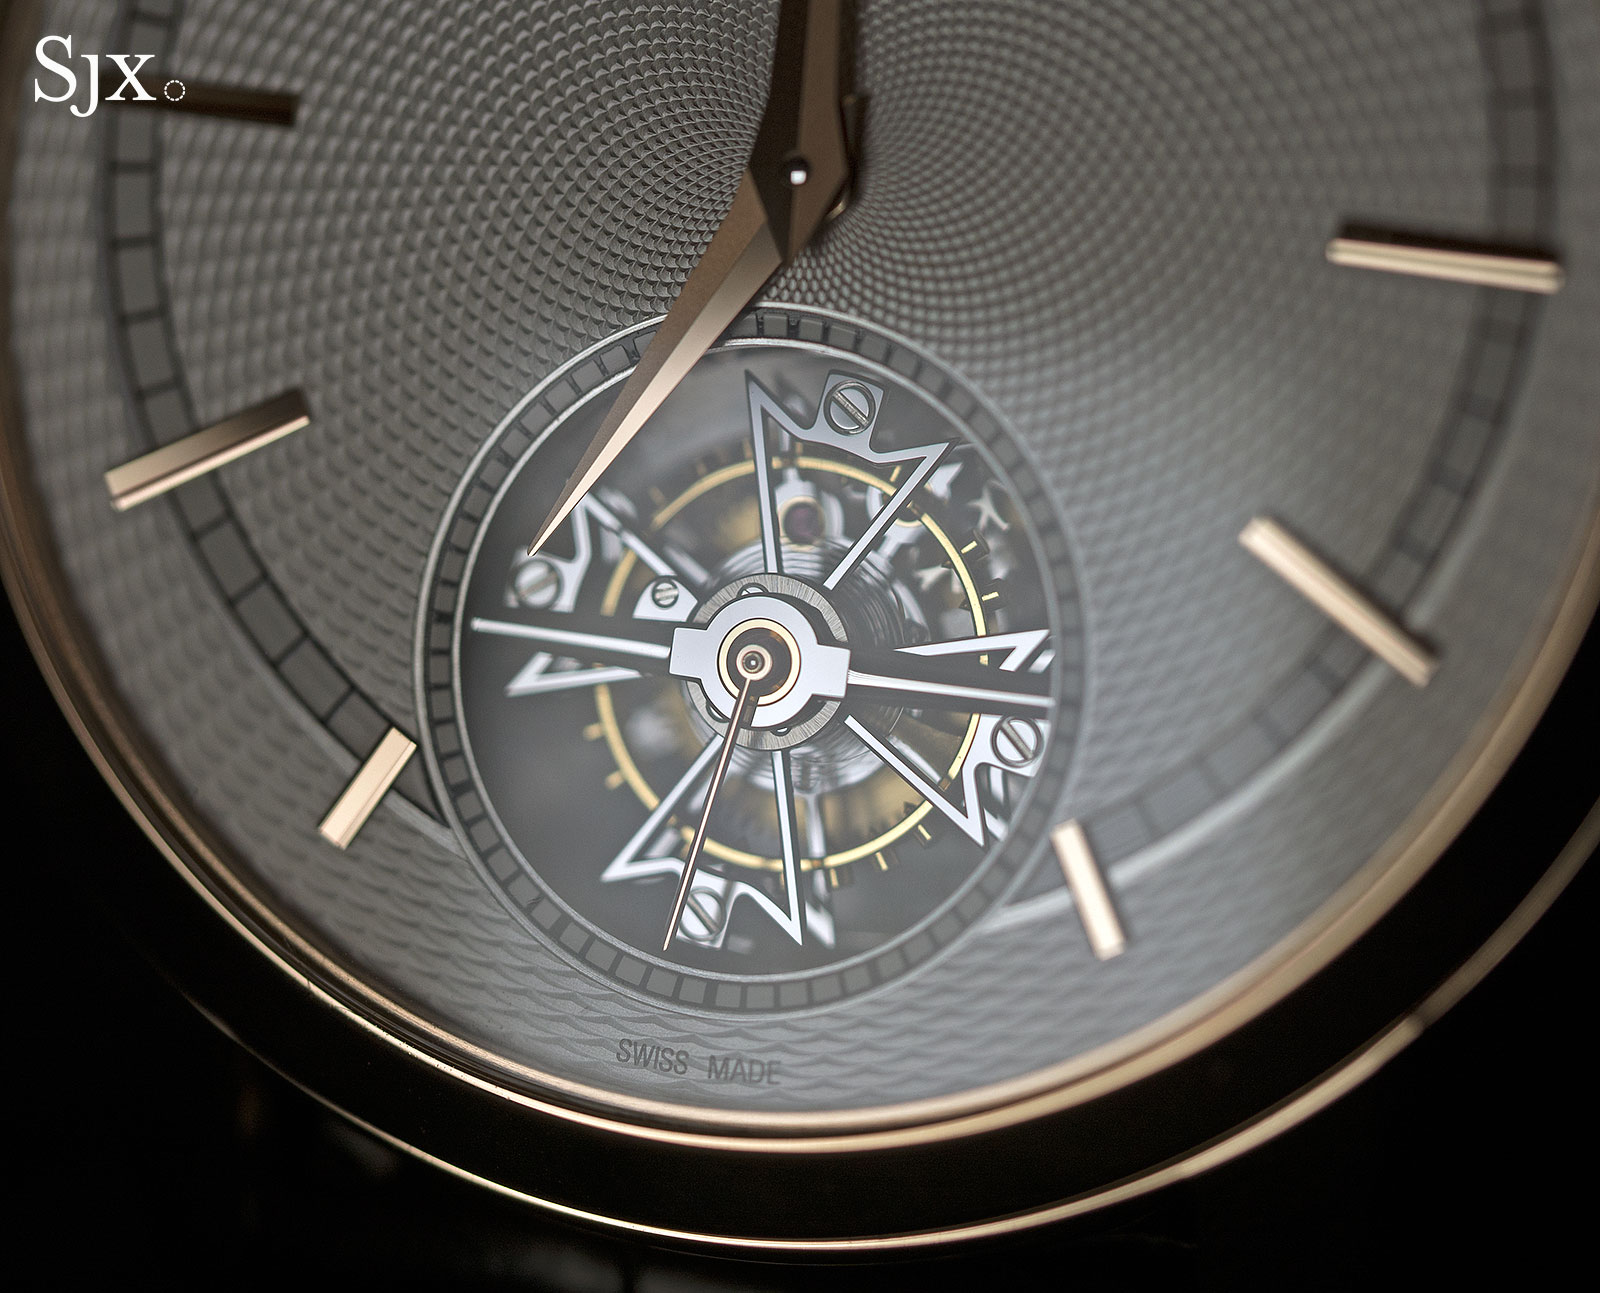 Vacheron Constantin Traditionnelle minute repeater tourbillon 2